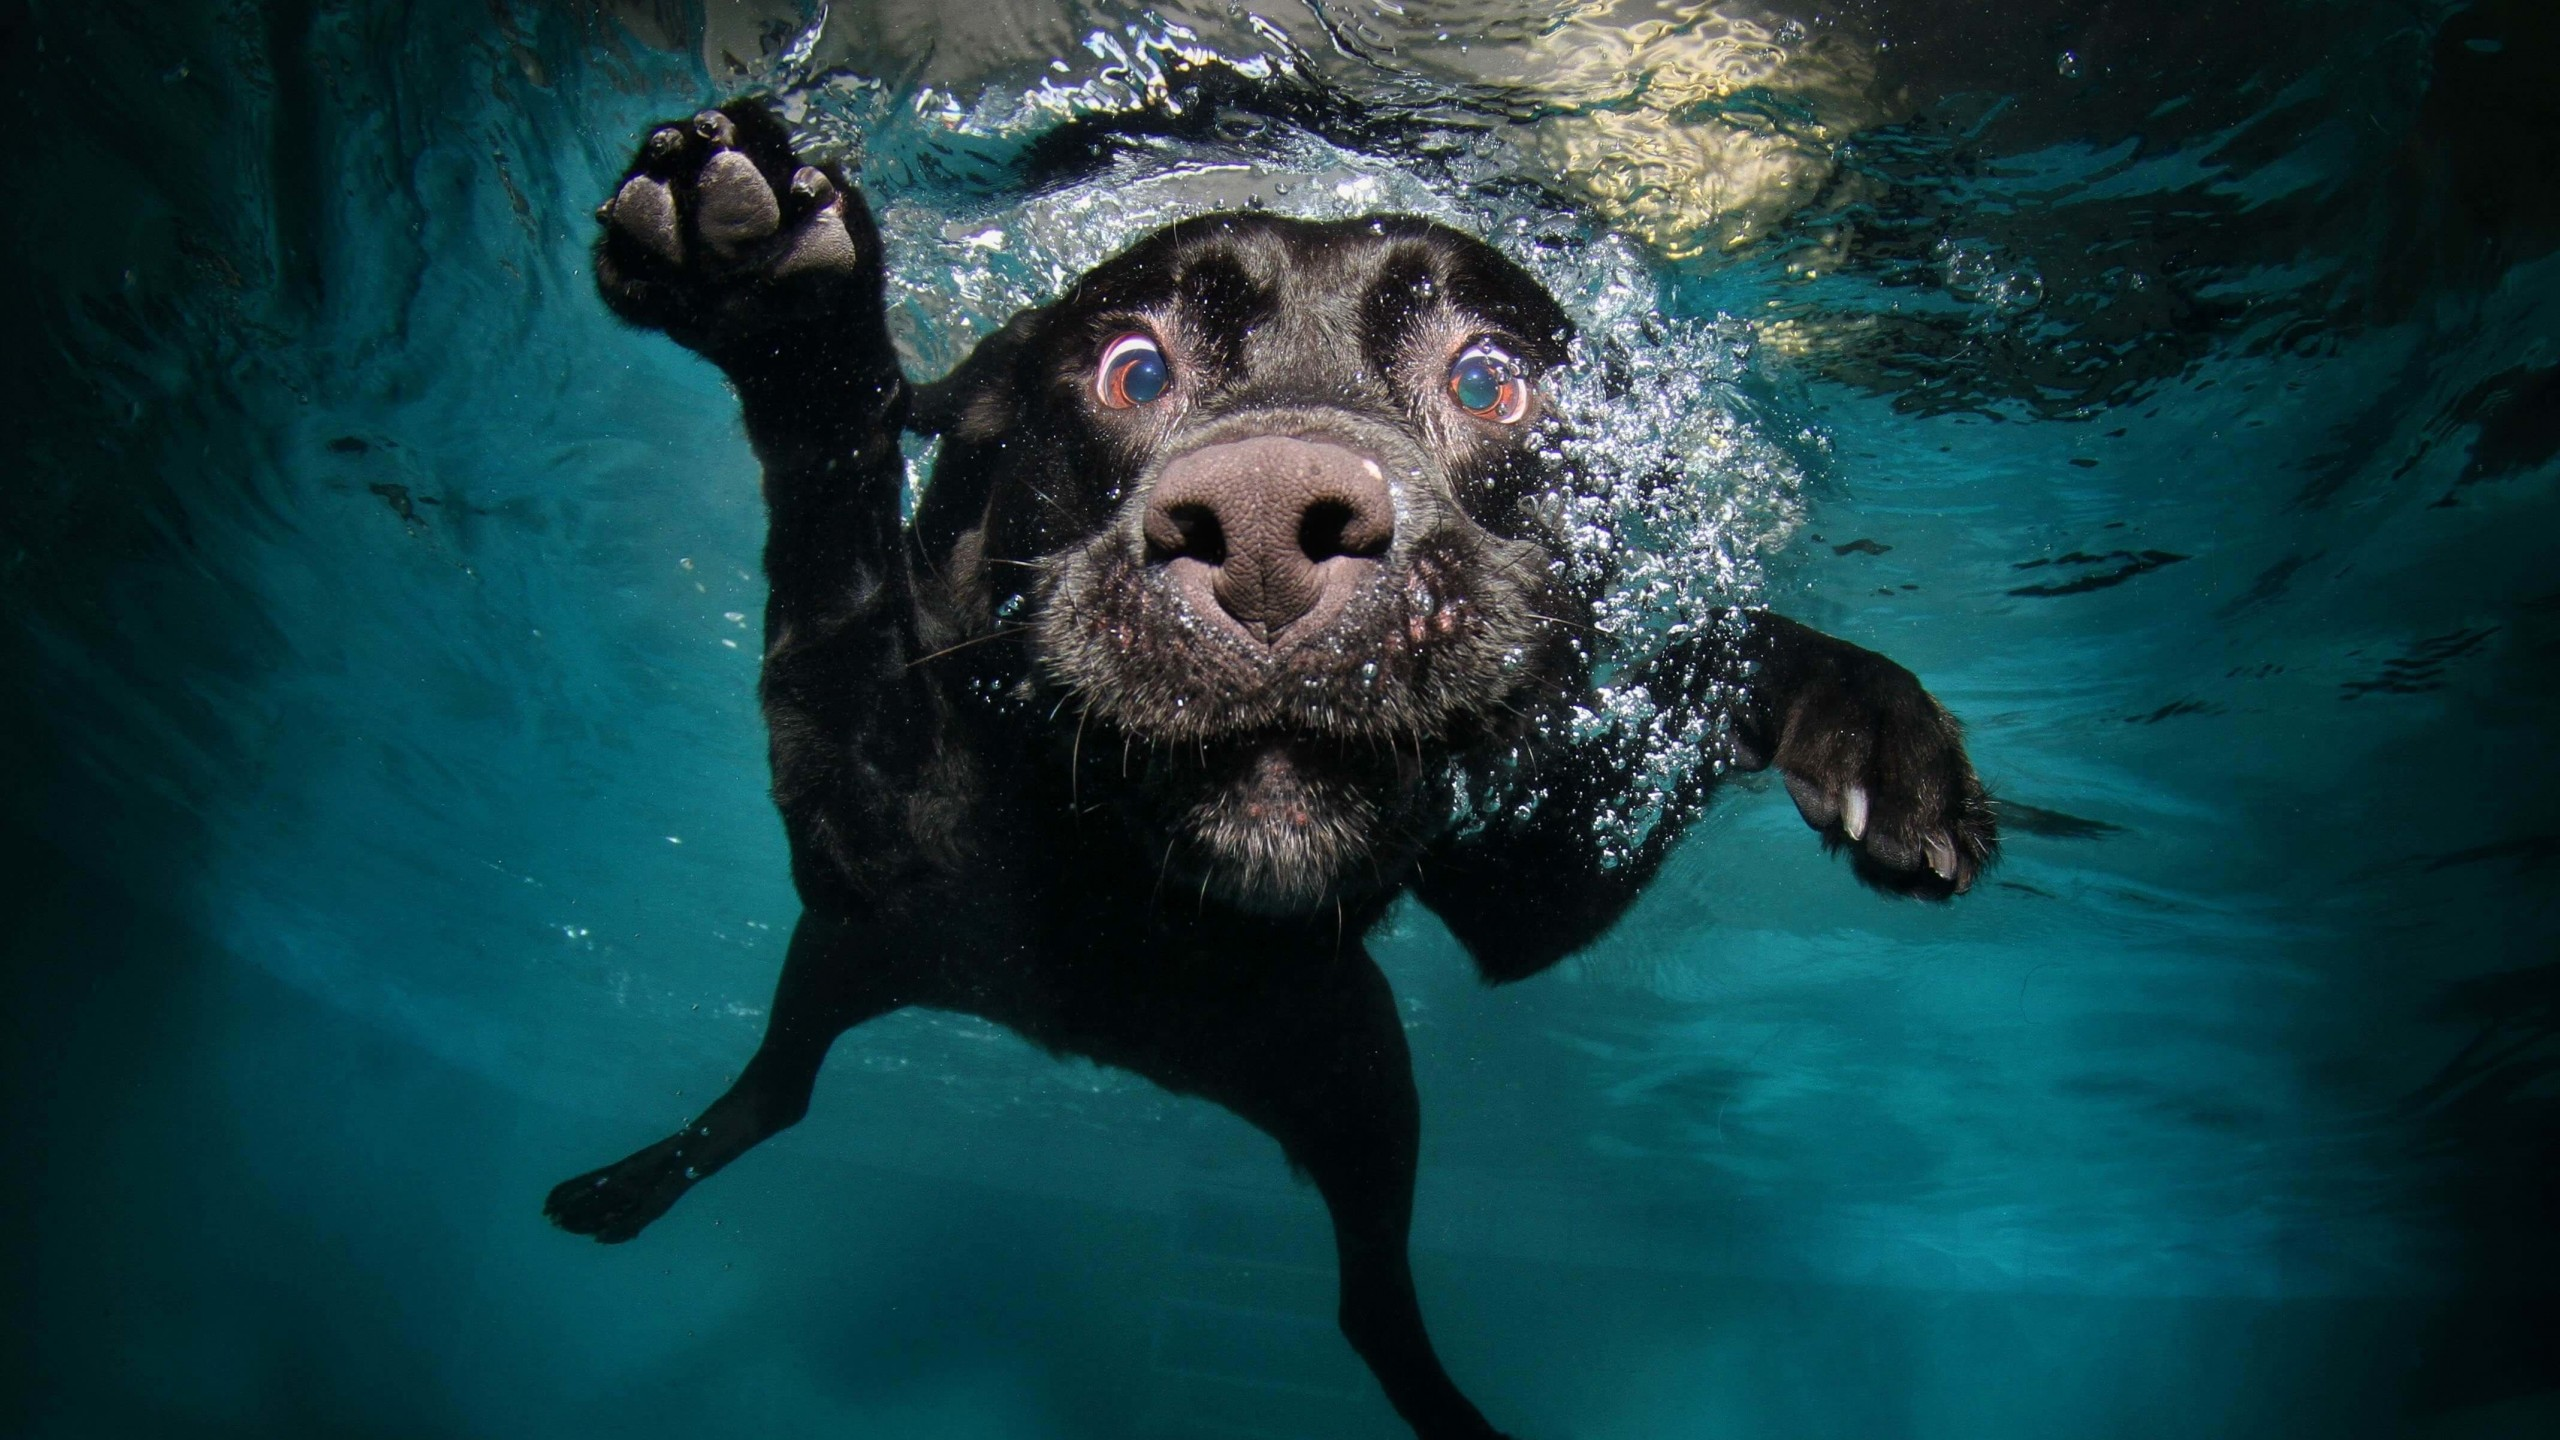 Underwater Dog Wallpaper for Social Media YouTube Channel Art